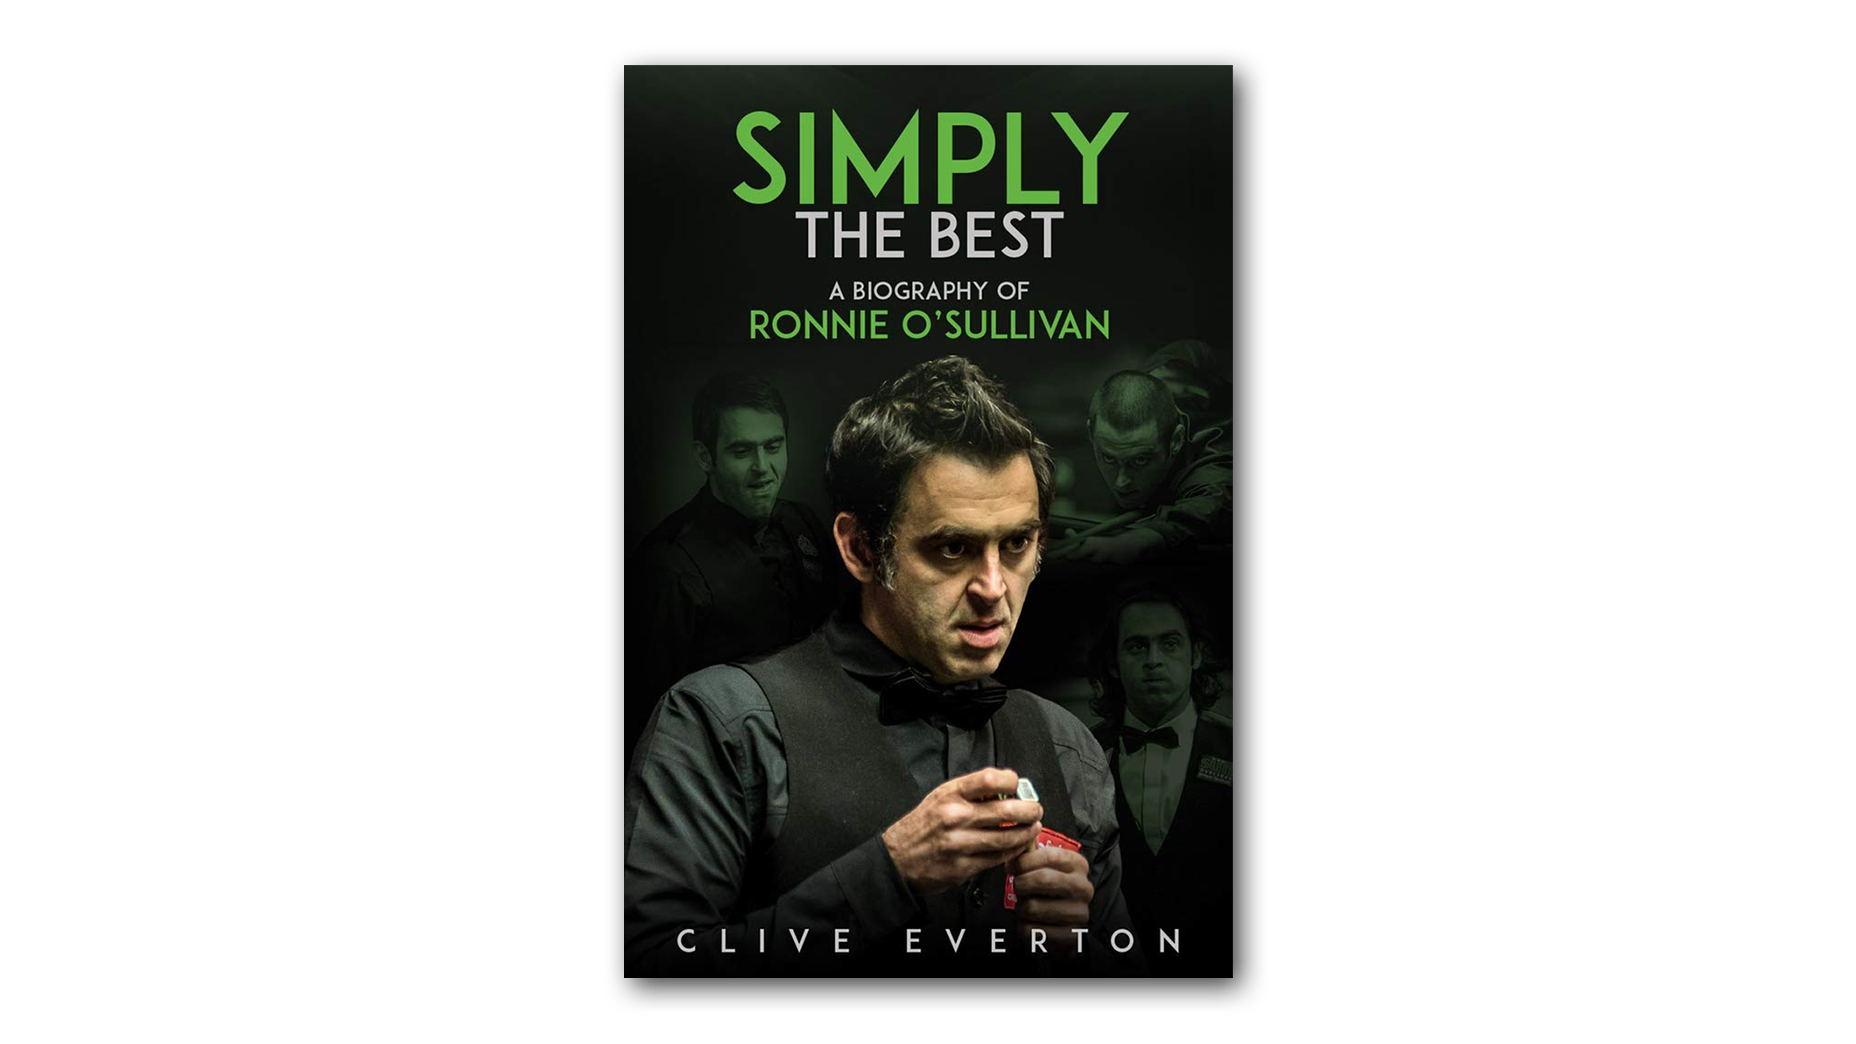 Simply the Best: A Biography of Ronnie O'Sullivanby by Clive Everton